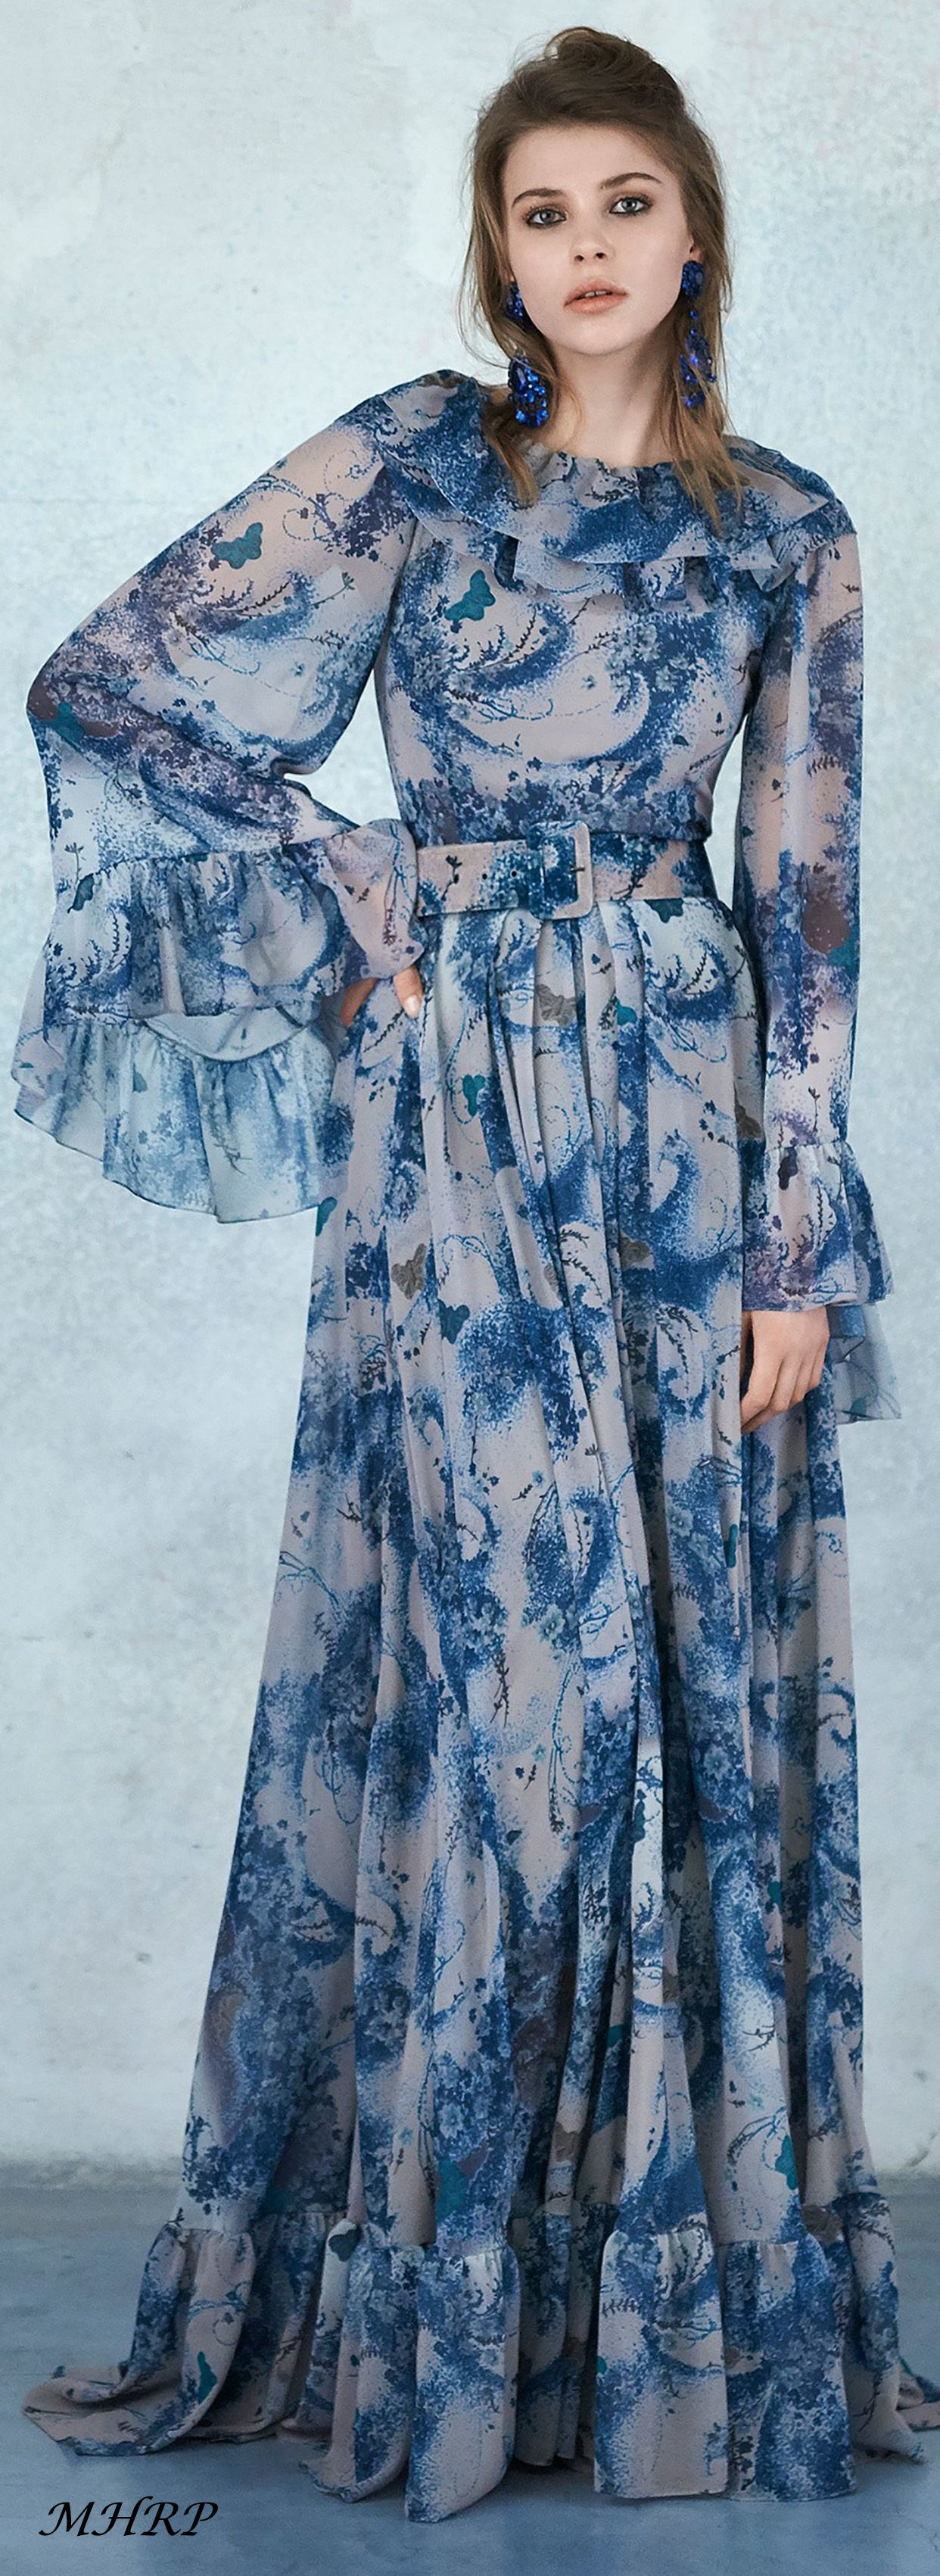 Luisabeccariaprefallpinned from vogue runway dresses n